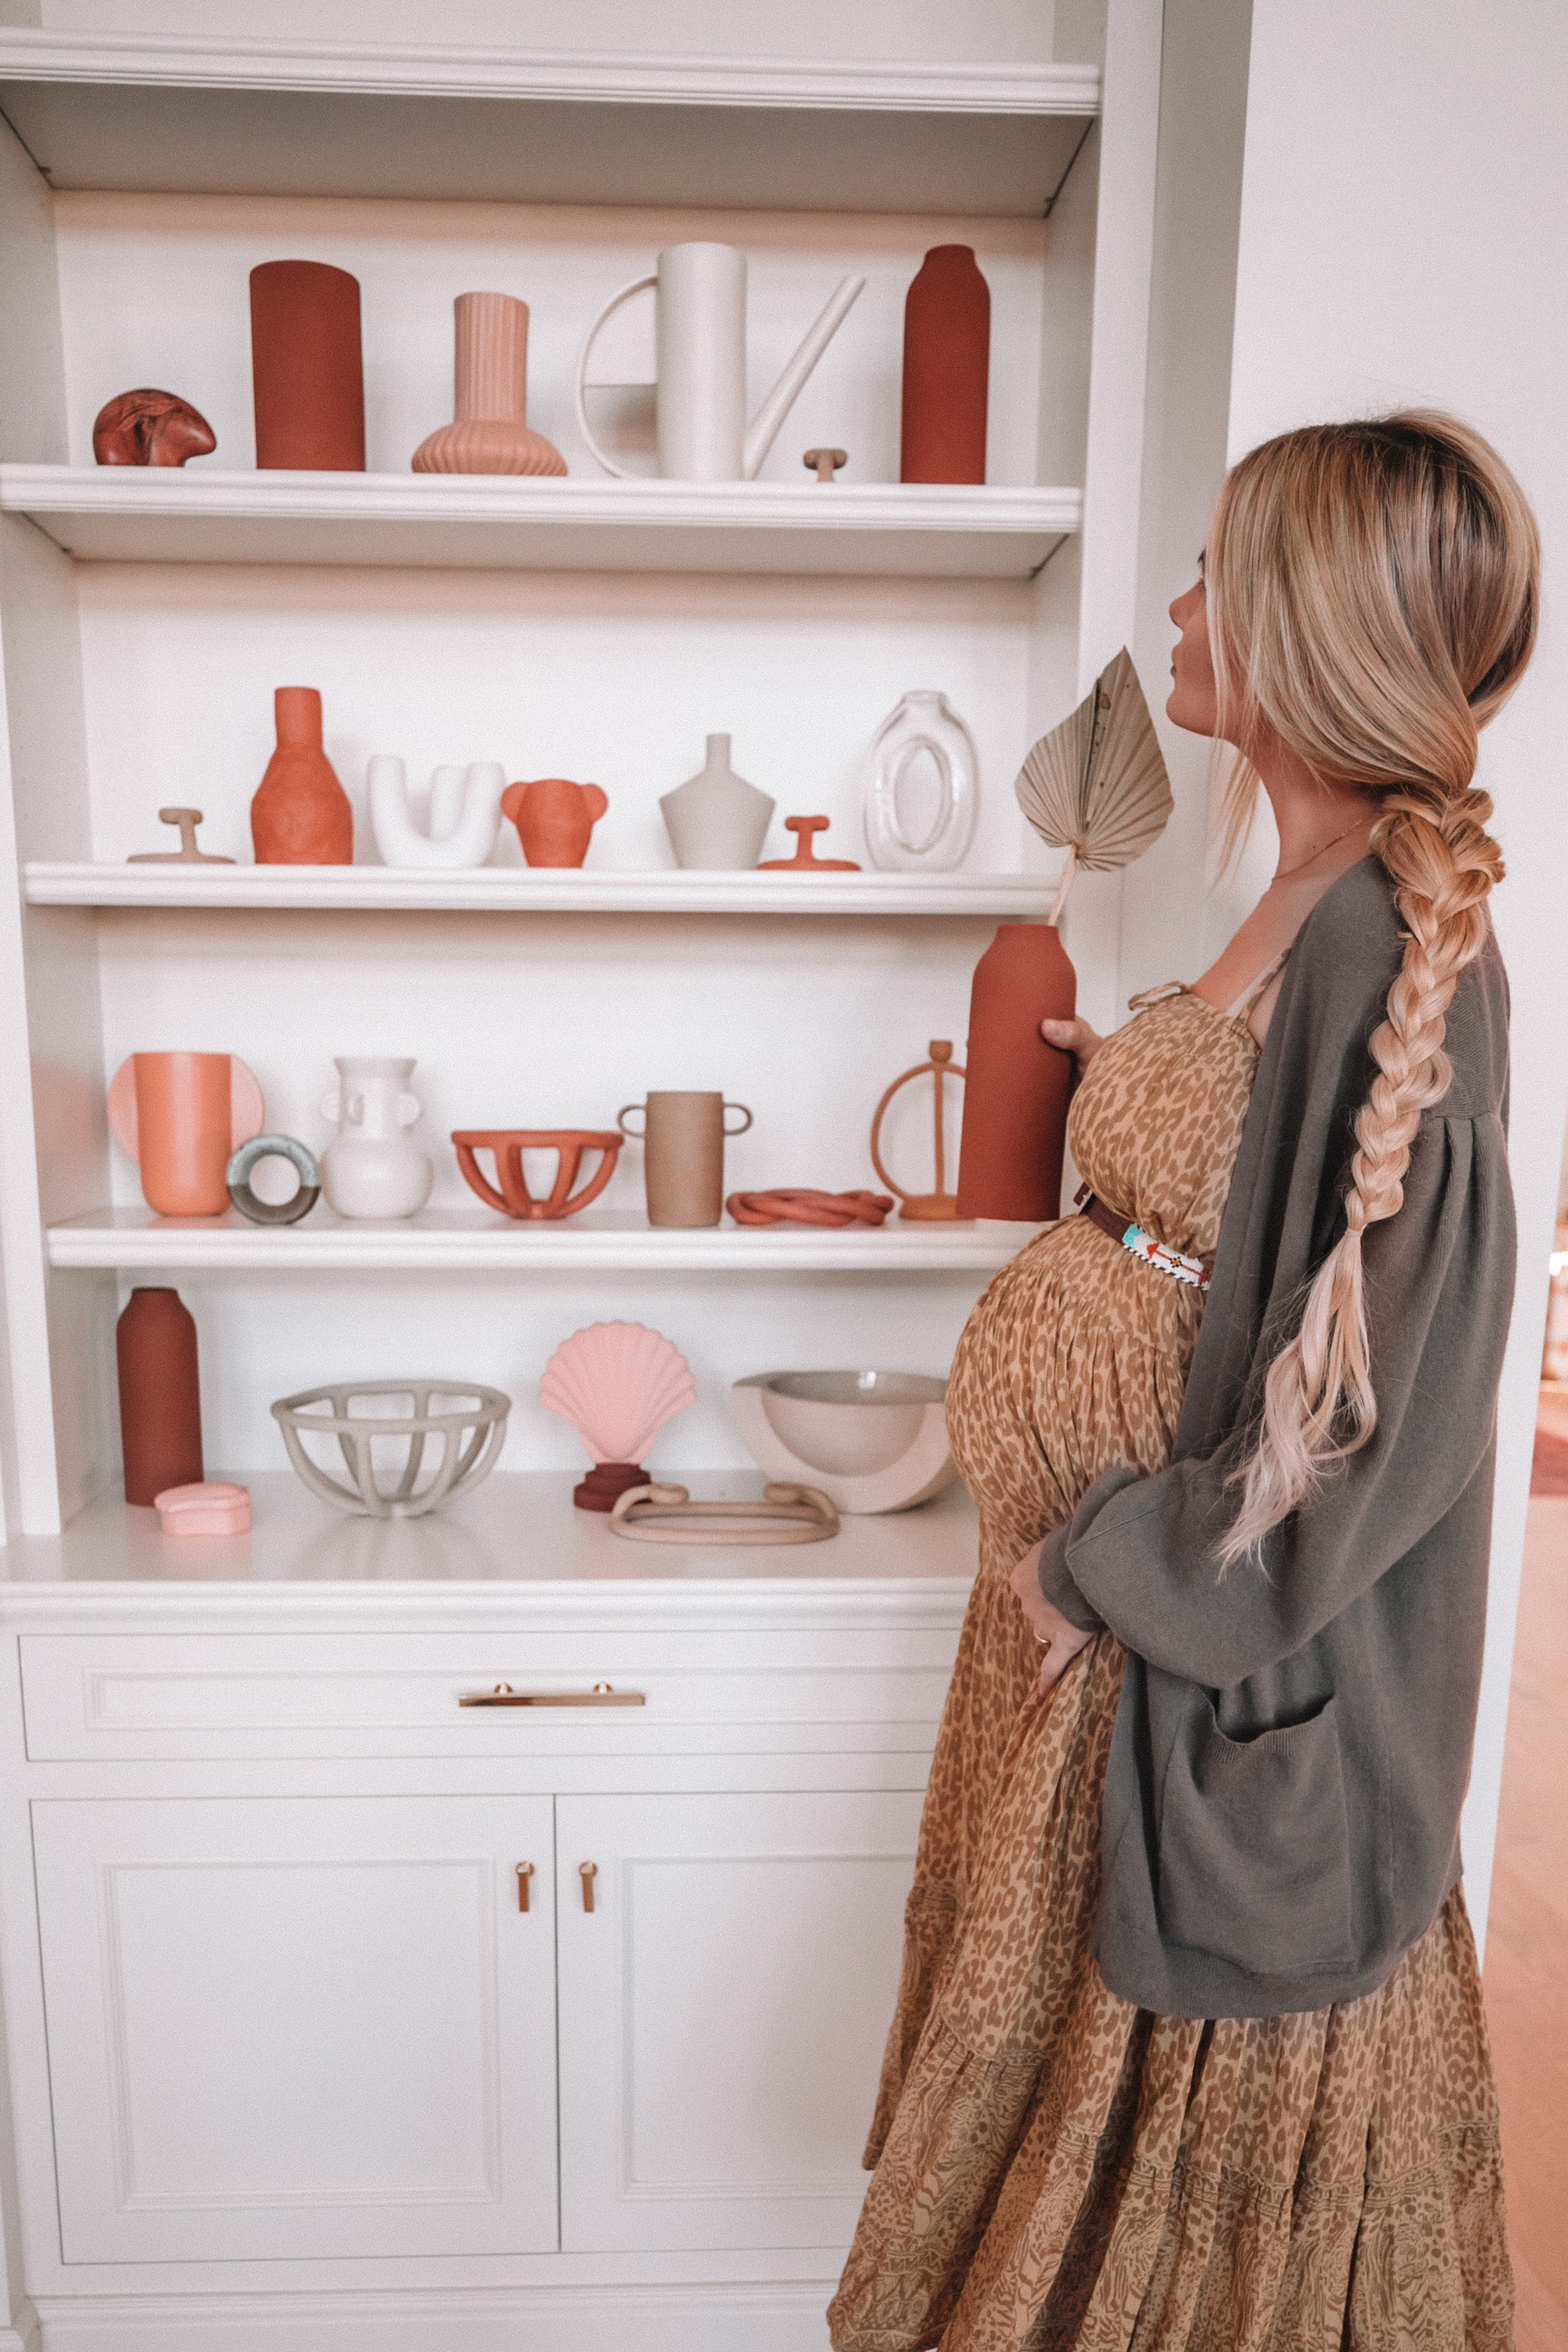 Amber Fillerup Clark decorating her new home with her 2019 color scheme of pink, peach, brown and a mix of green and yellow. Barefoot Blonde.